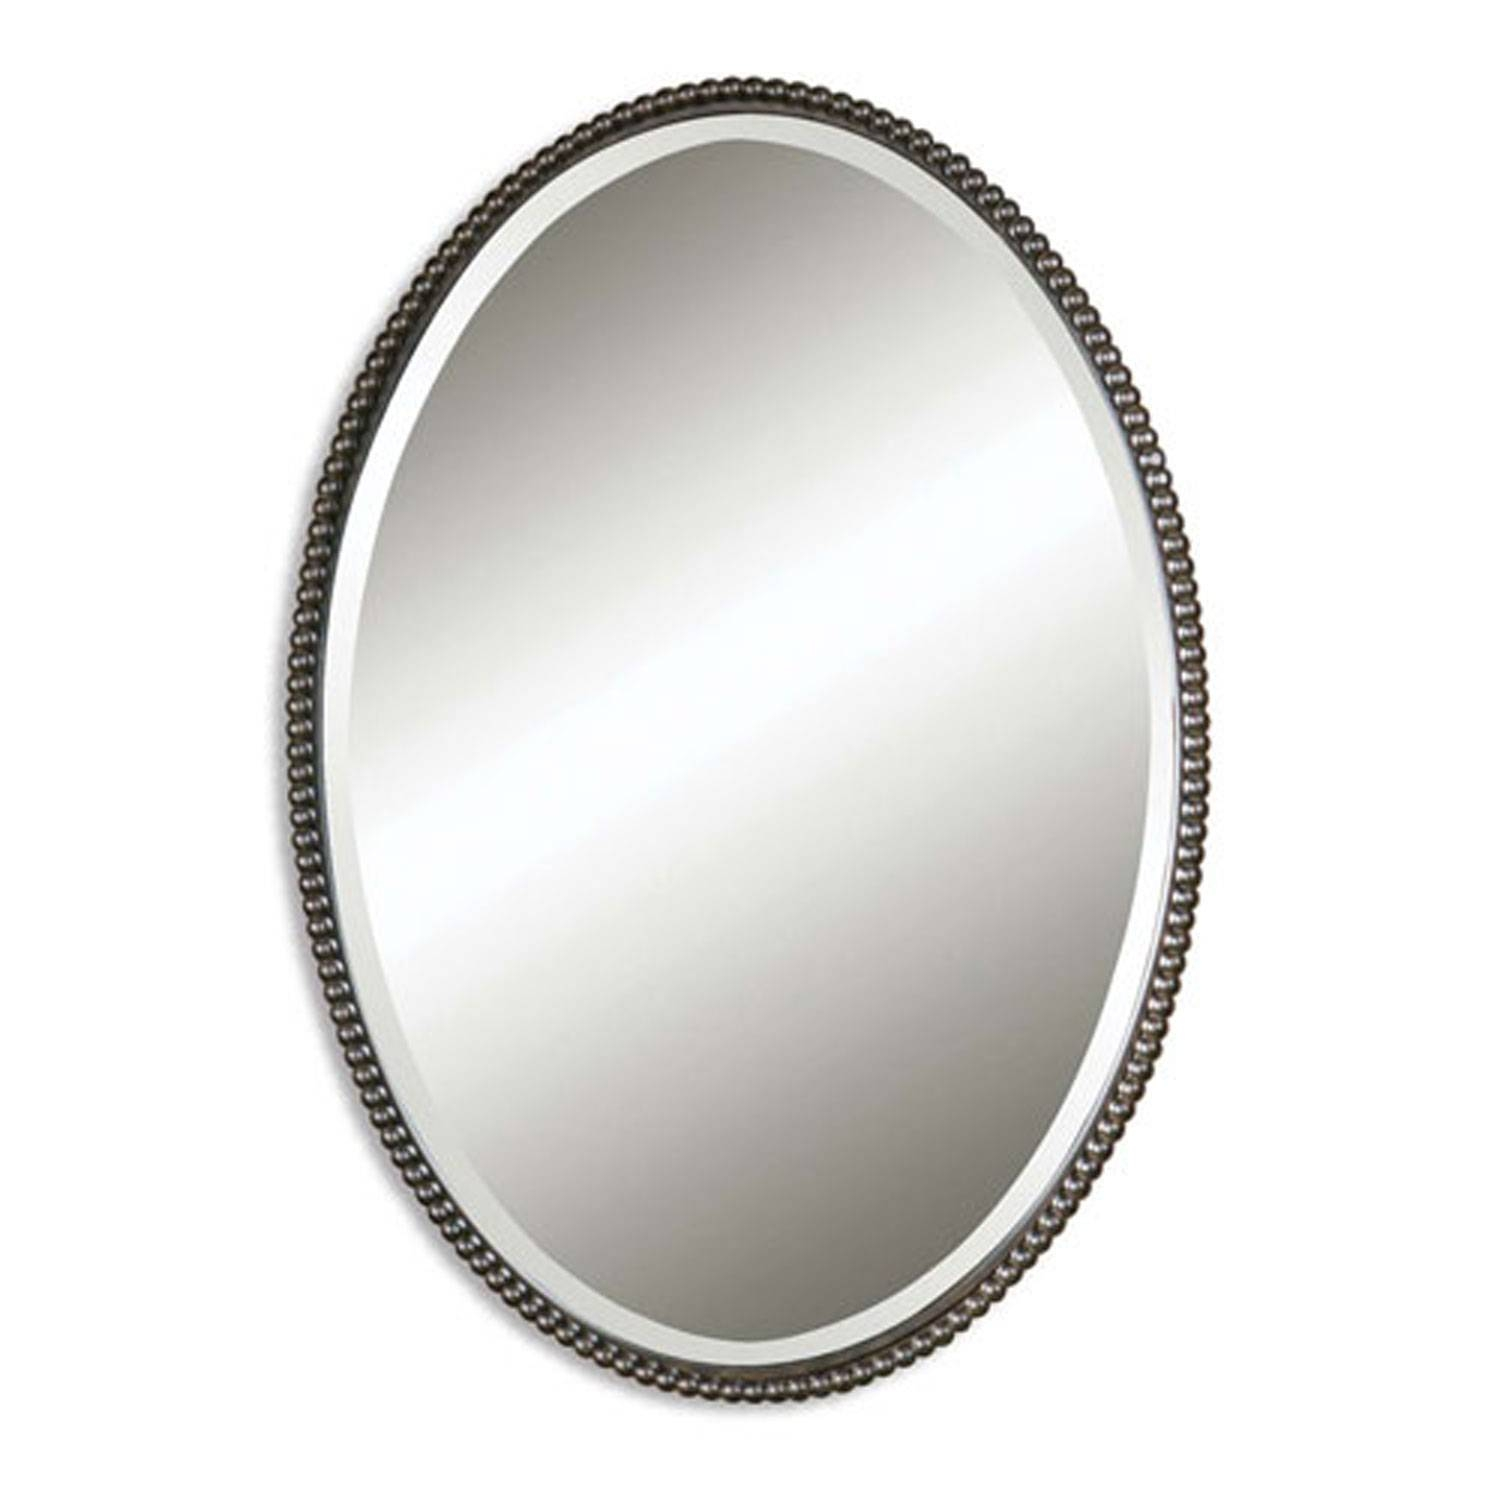 Sherise Oval Mirror Uttermost Wall Mirror Mirrors Home Decor within Oval Mirrors for Walls (Image 21 of 25)